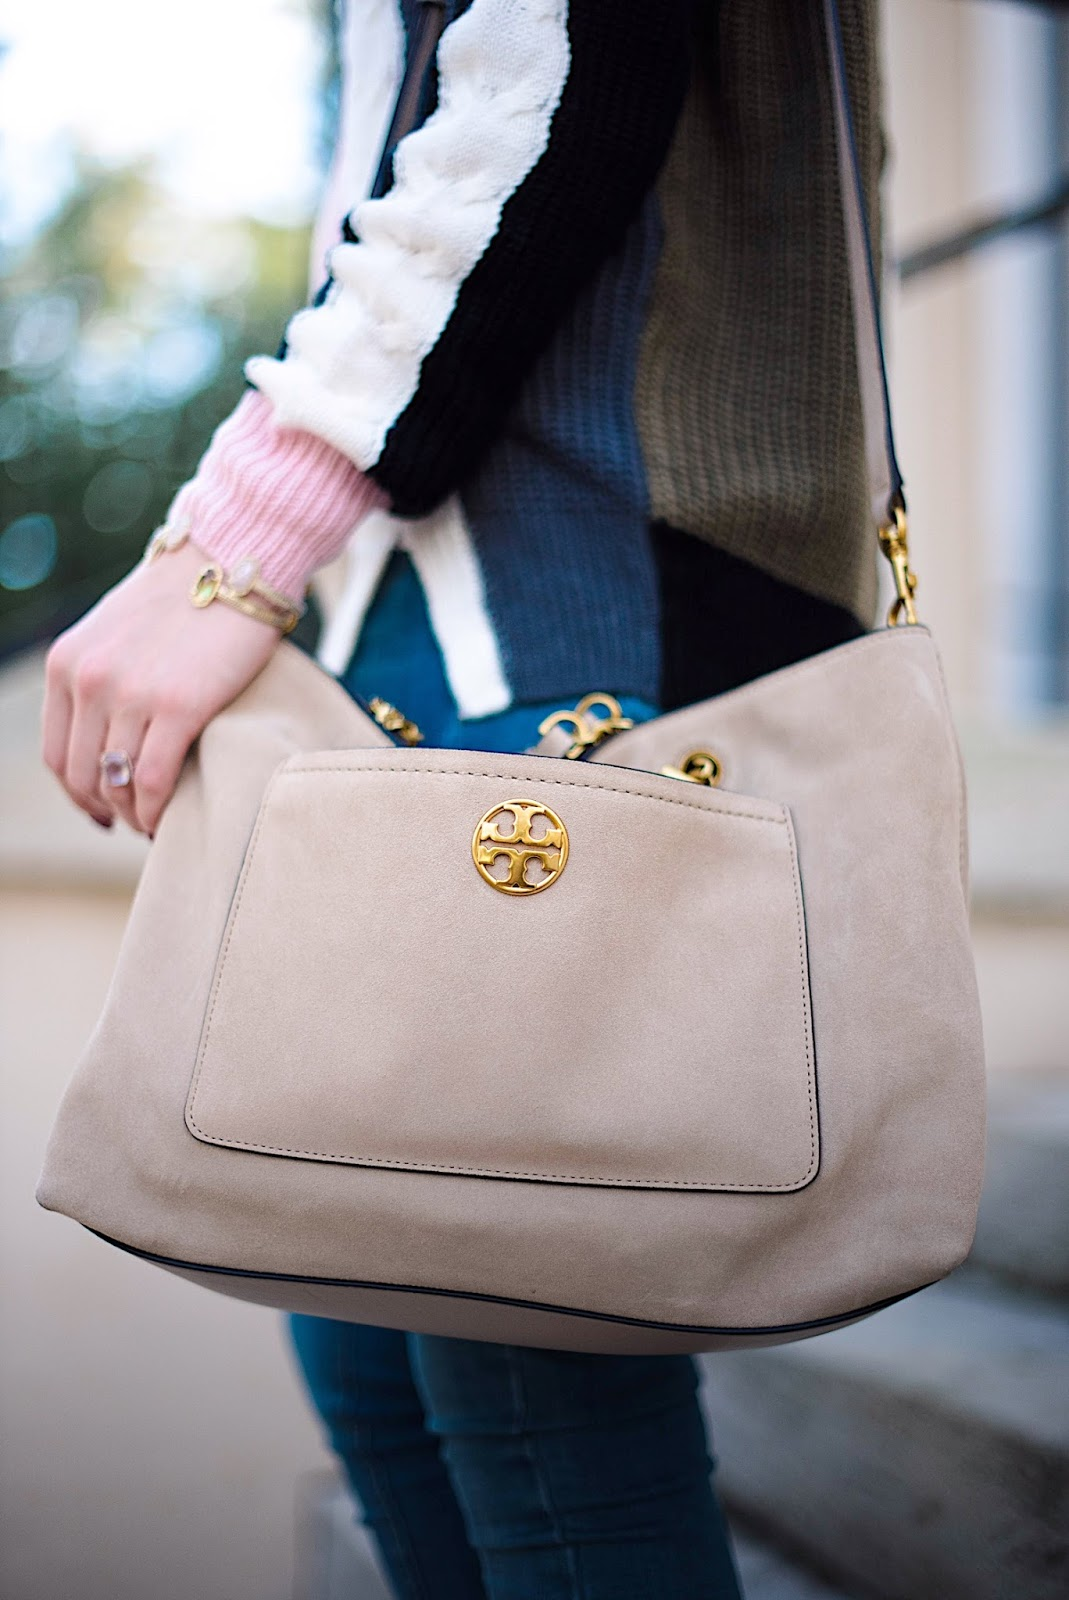 Tory Burch Chelsea Suede Satchel - Something Delightful Blog